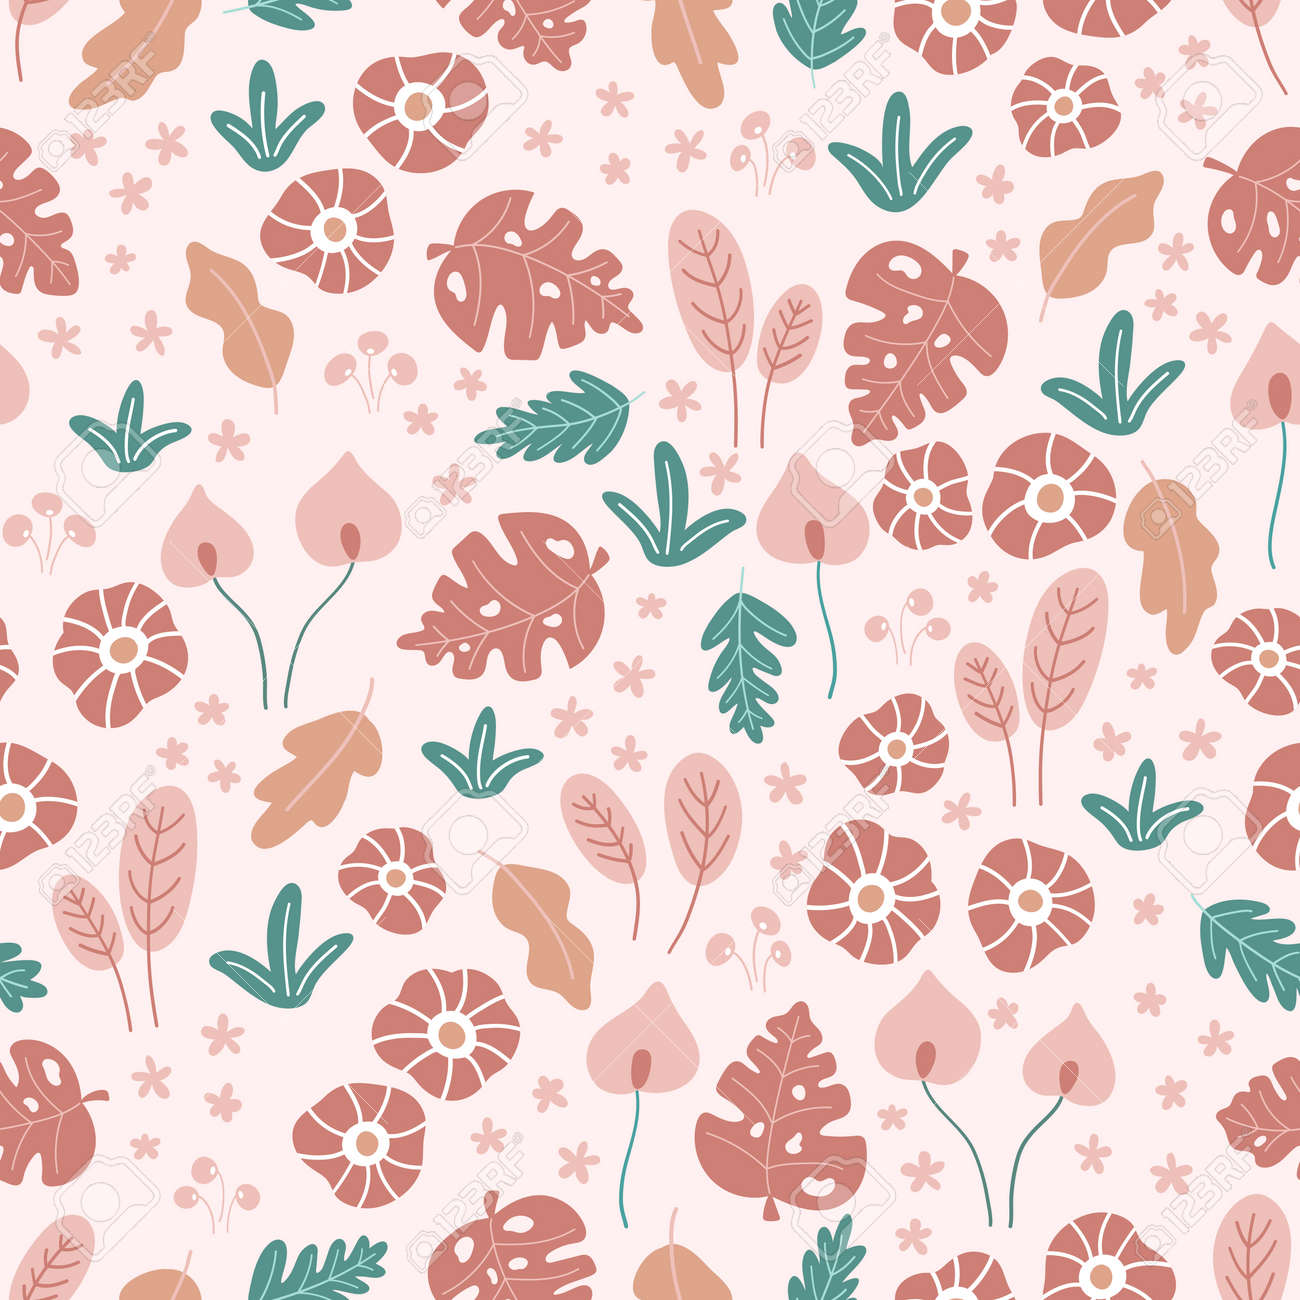 Floral seamless pattern with doodle flowers and leaves on pink background. Tropical hand drawn plants. Vector illustration. - 169086789